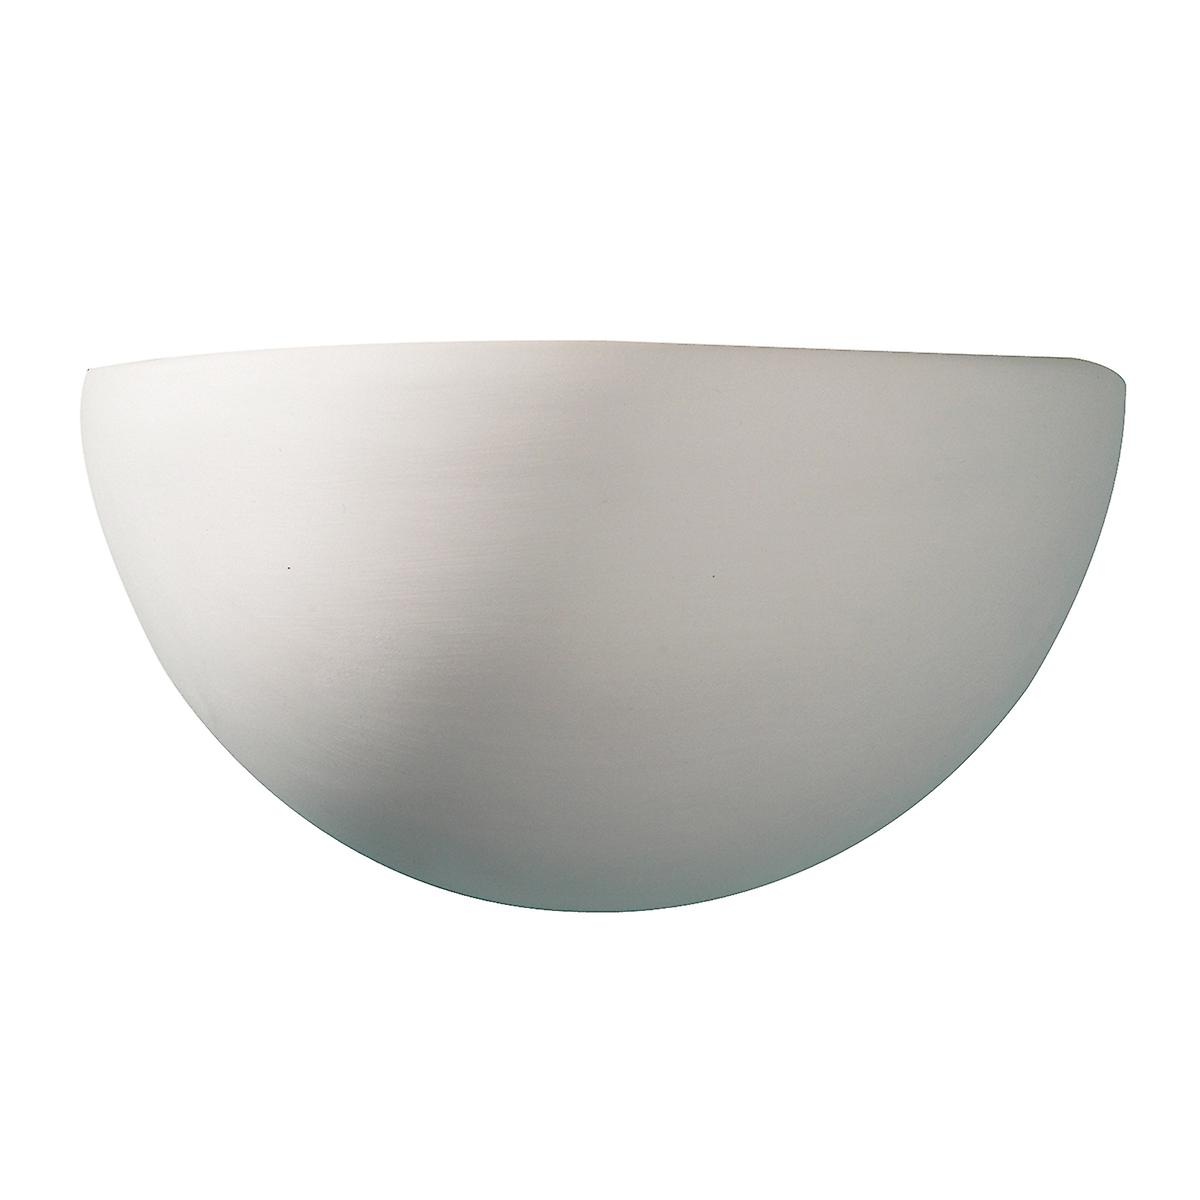 Dar MAR0748 Marino Ceramic Wall Washer Light - Double Insulated